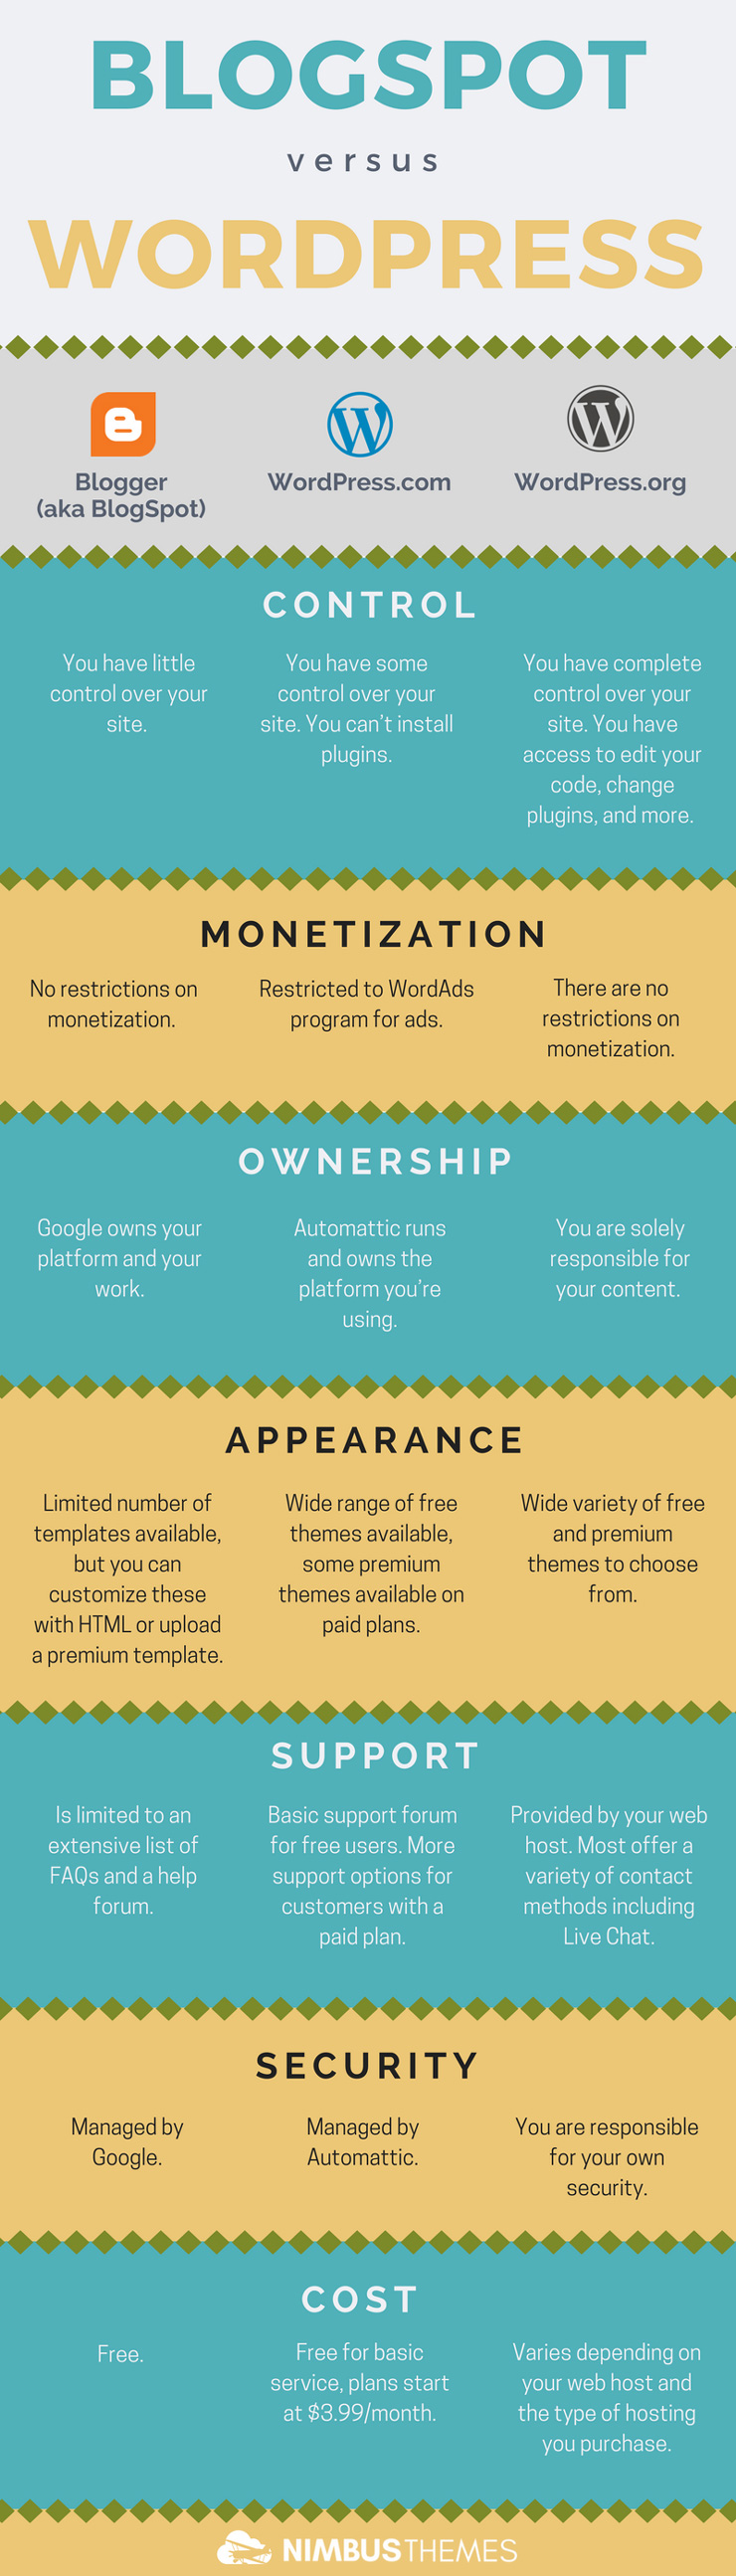 BlogSpot vs. WordPress Infographic